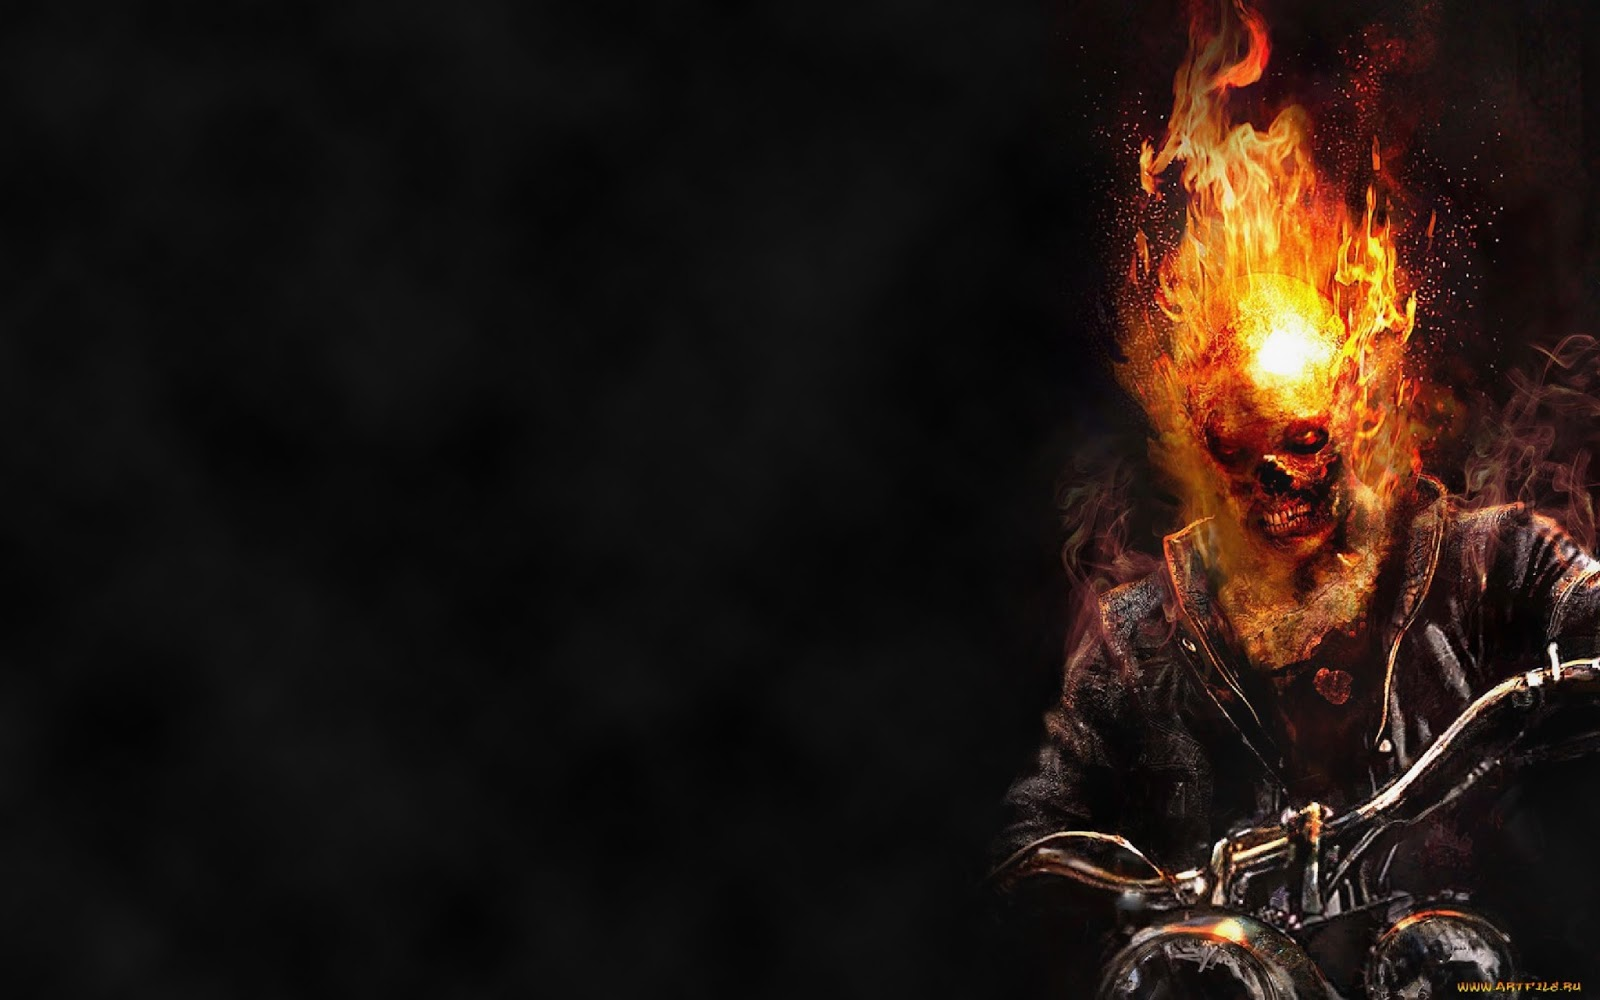 GHOST RIDER 2 HD WALLPAPERS FREE HD WALLPAPERS 1600x1000